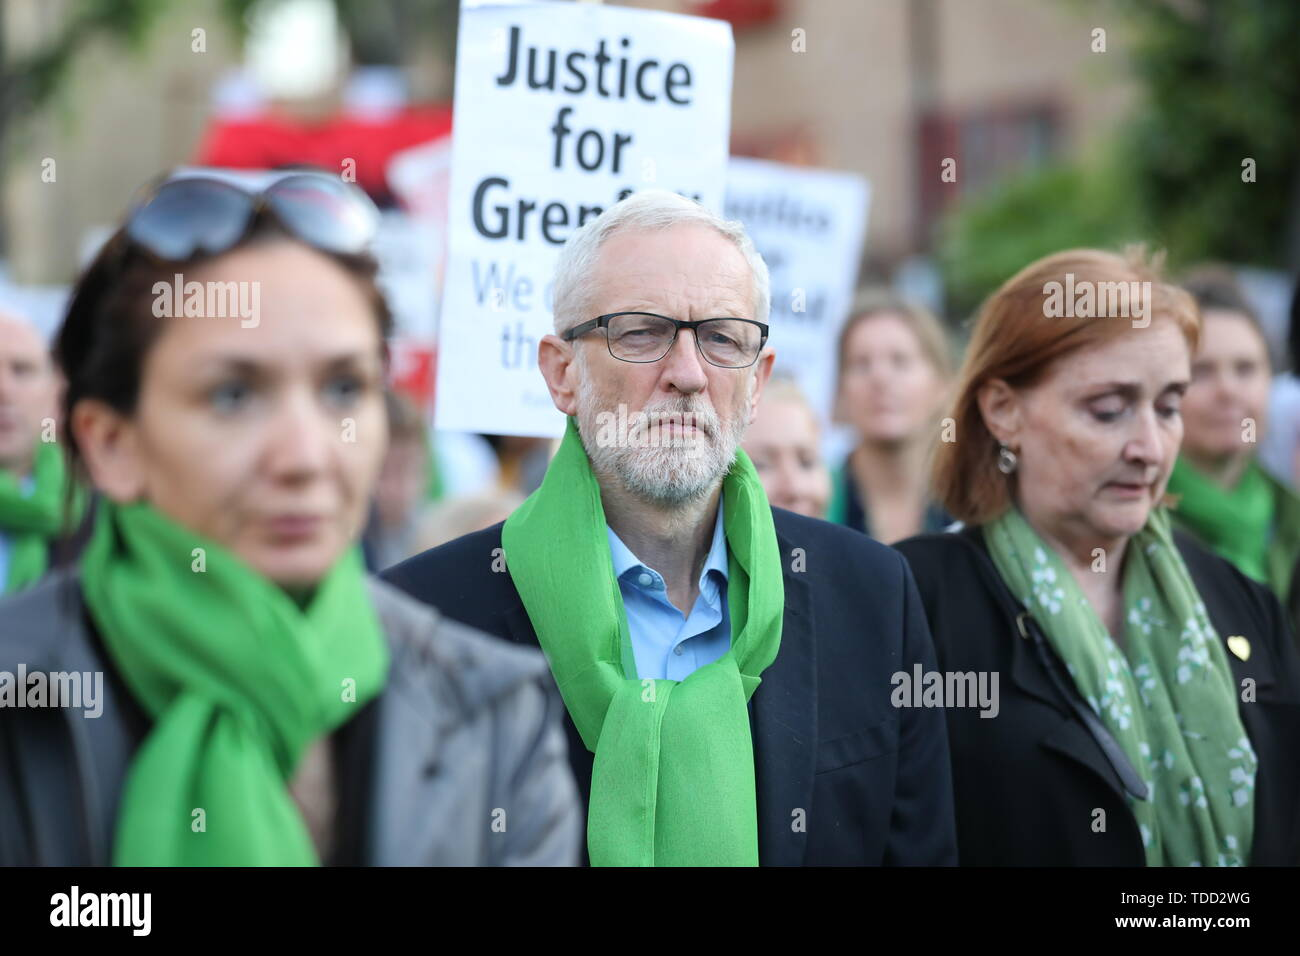 Labour leader Jeremy Corbyn walks with family and friends of the 72 people who lost their lives in the Grenfell Tower block fire, outside Grenfell Tower, London, during a silent walk to mark the two-year anniversary. - Stock Image